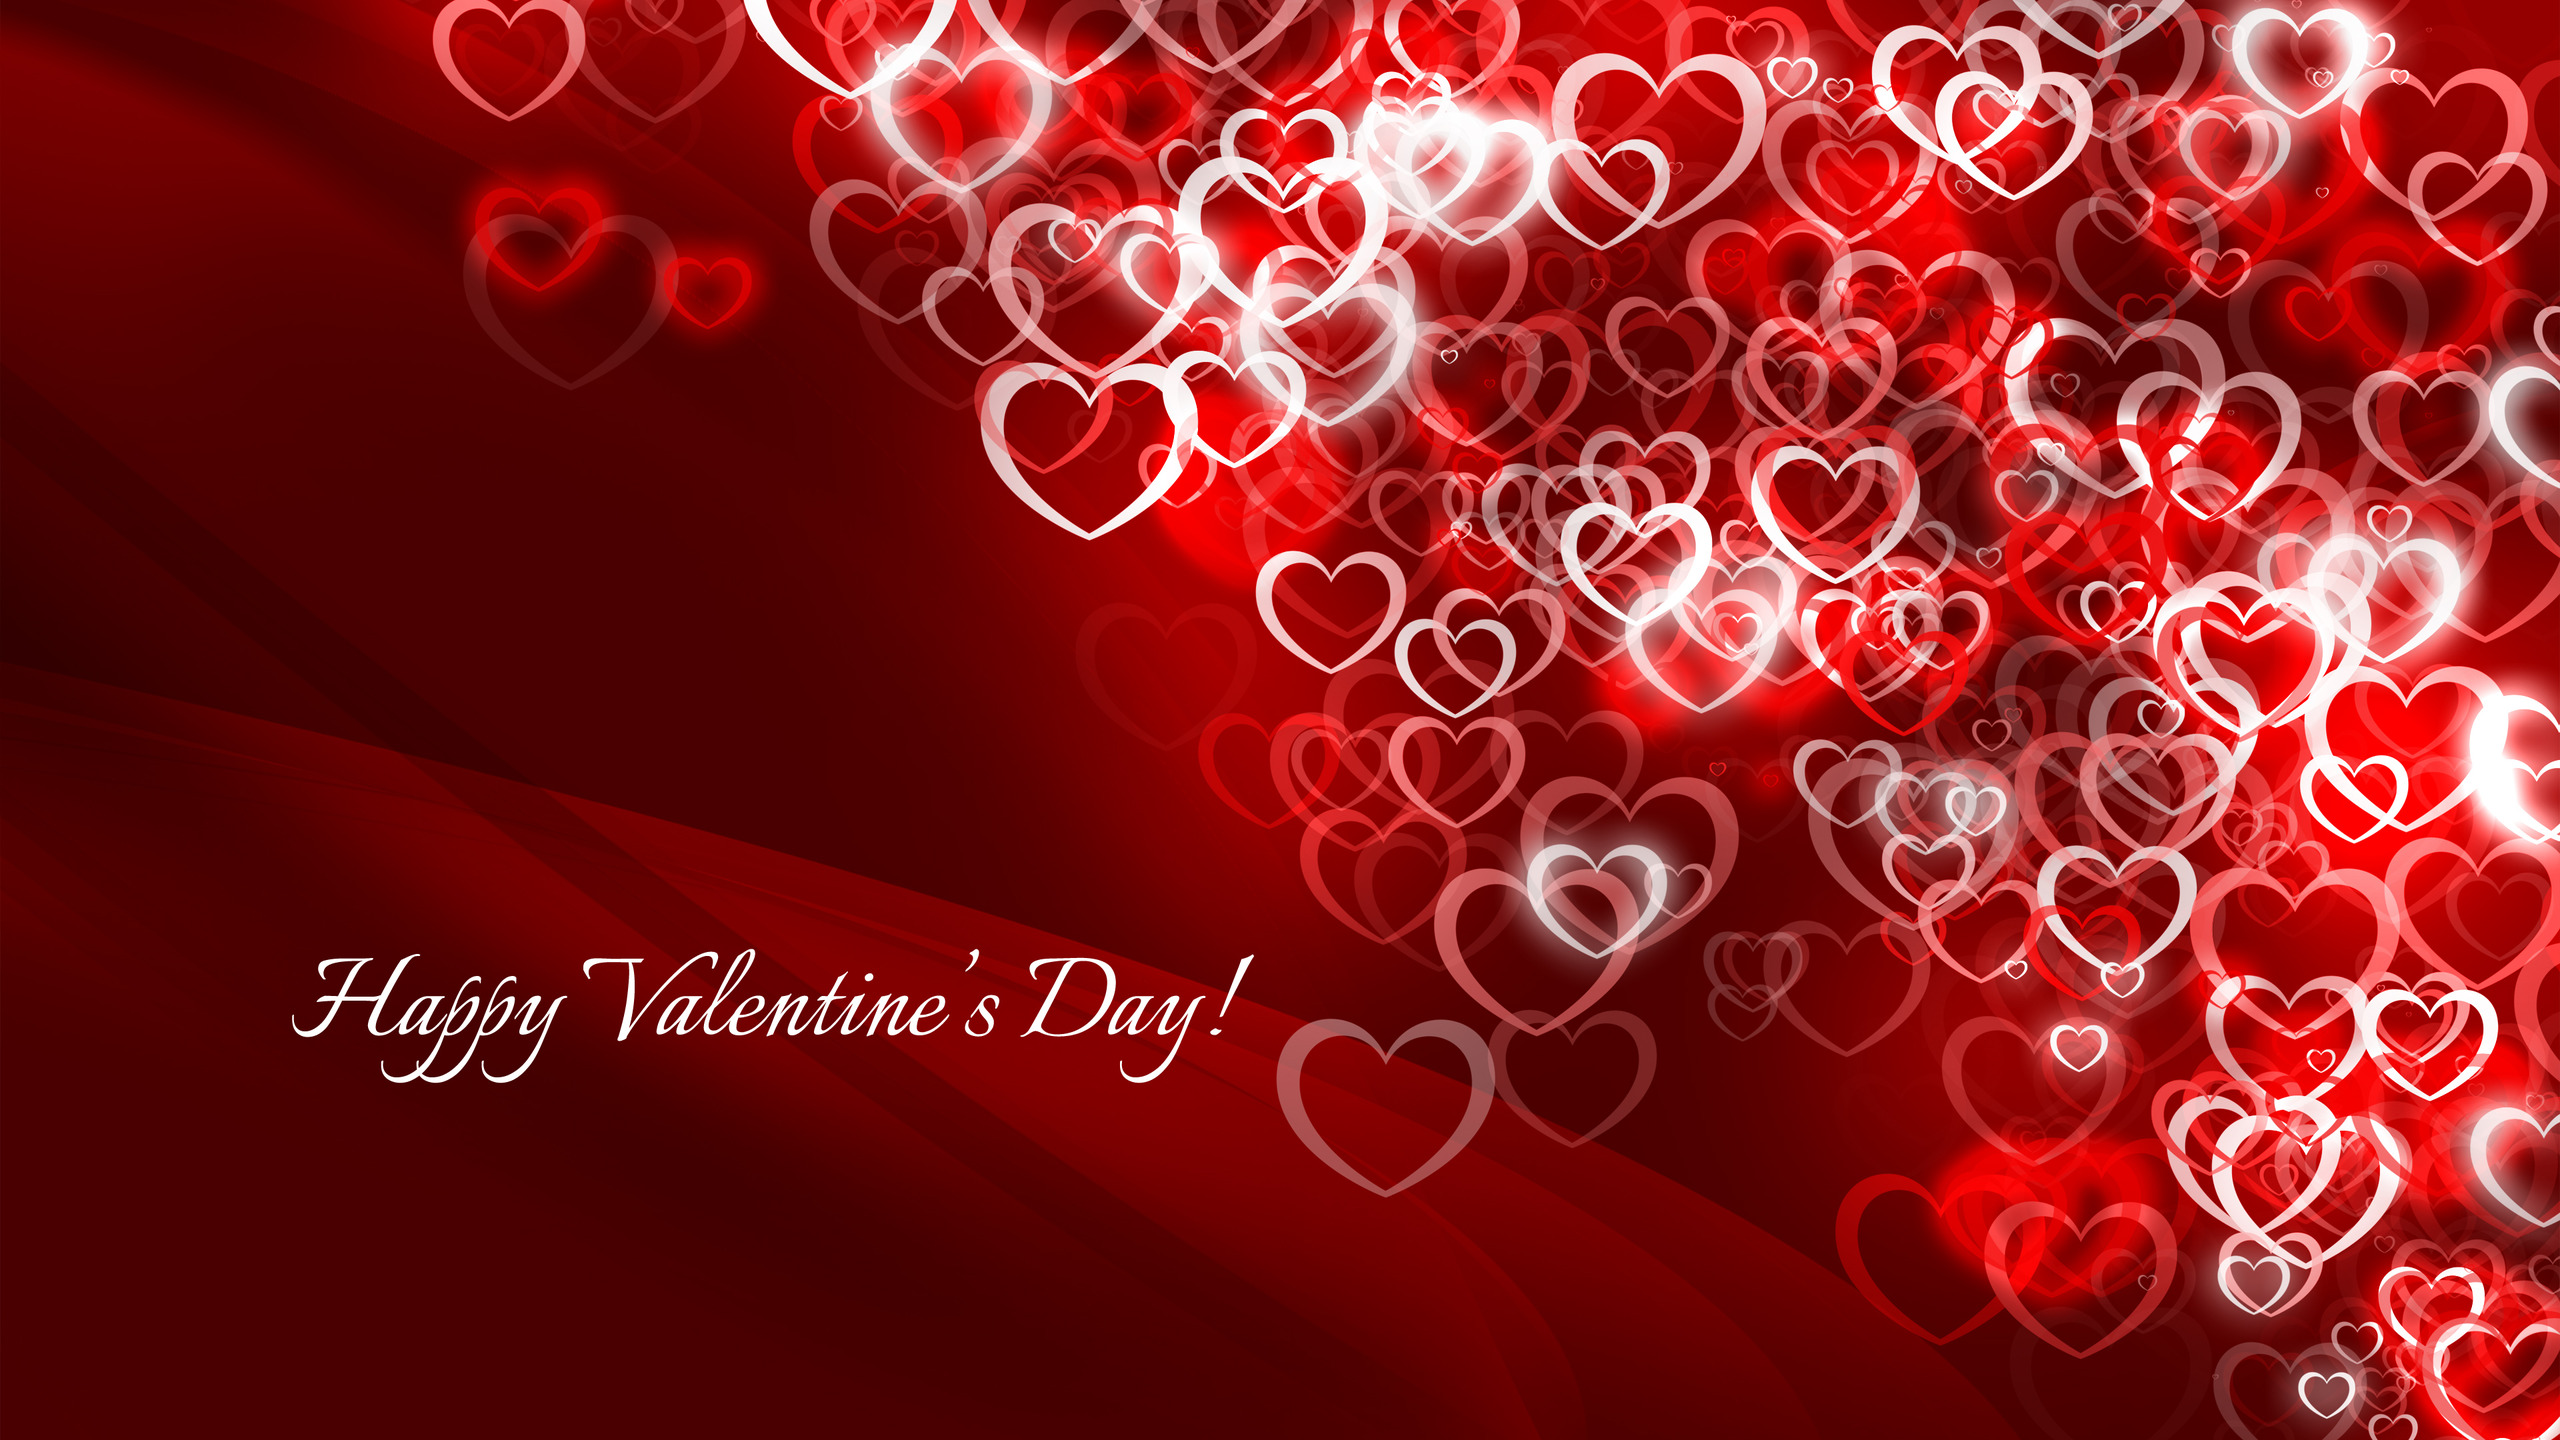 valentines wallpaper | 1600x900 | #53039